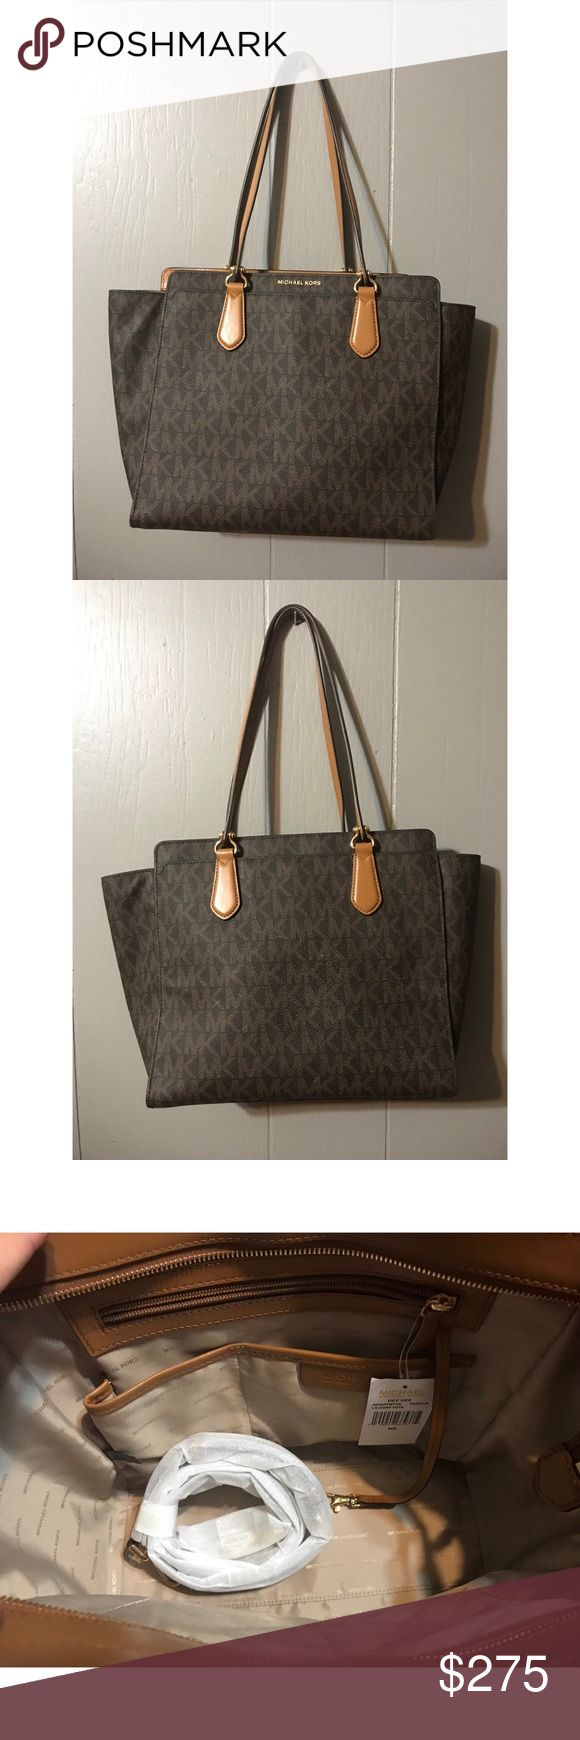 """Michael Kors Large Dee Dee Tote NTW Michael Kors Large Dee Dee Tote, Signature Print,  Large sized bag 16.5""""W x 11.5""""H x 5""""D, 10.5""""L Double Handles; 23.5""""L to 26""""L adjustable strap. Zip Closure. New handbag but there are light scuffs on the back of the bag (barely noticeable) as shown in photo. Will be shipped with MK Dust bag. Michael Kors Bags Totes"""